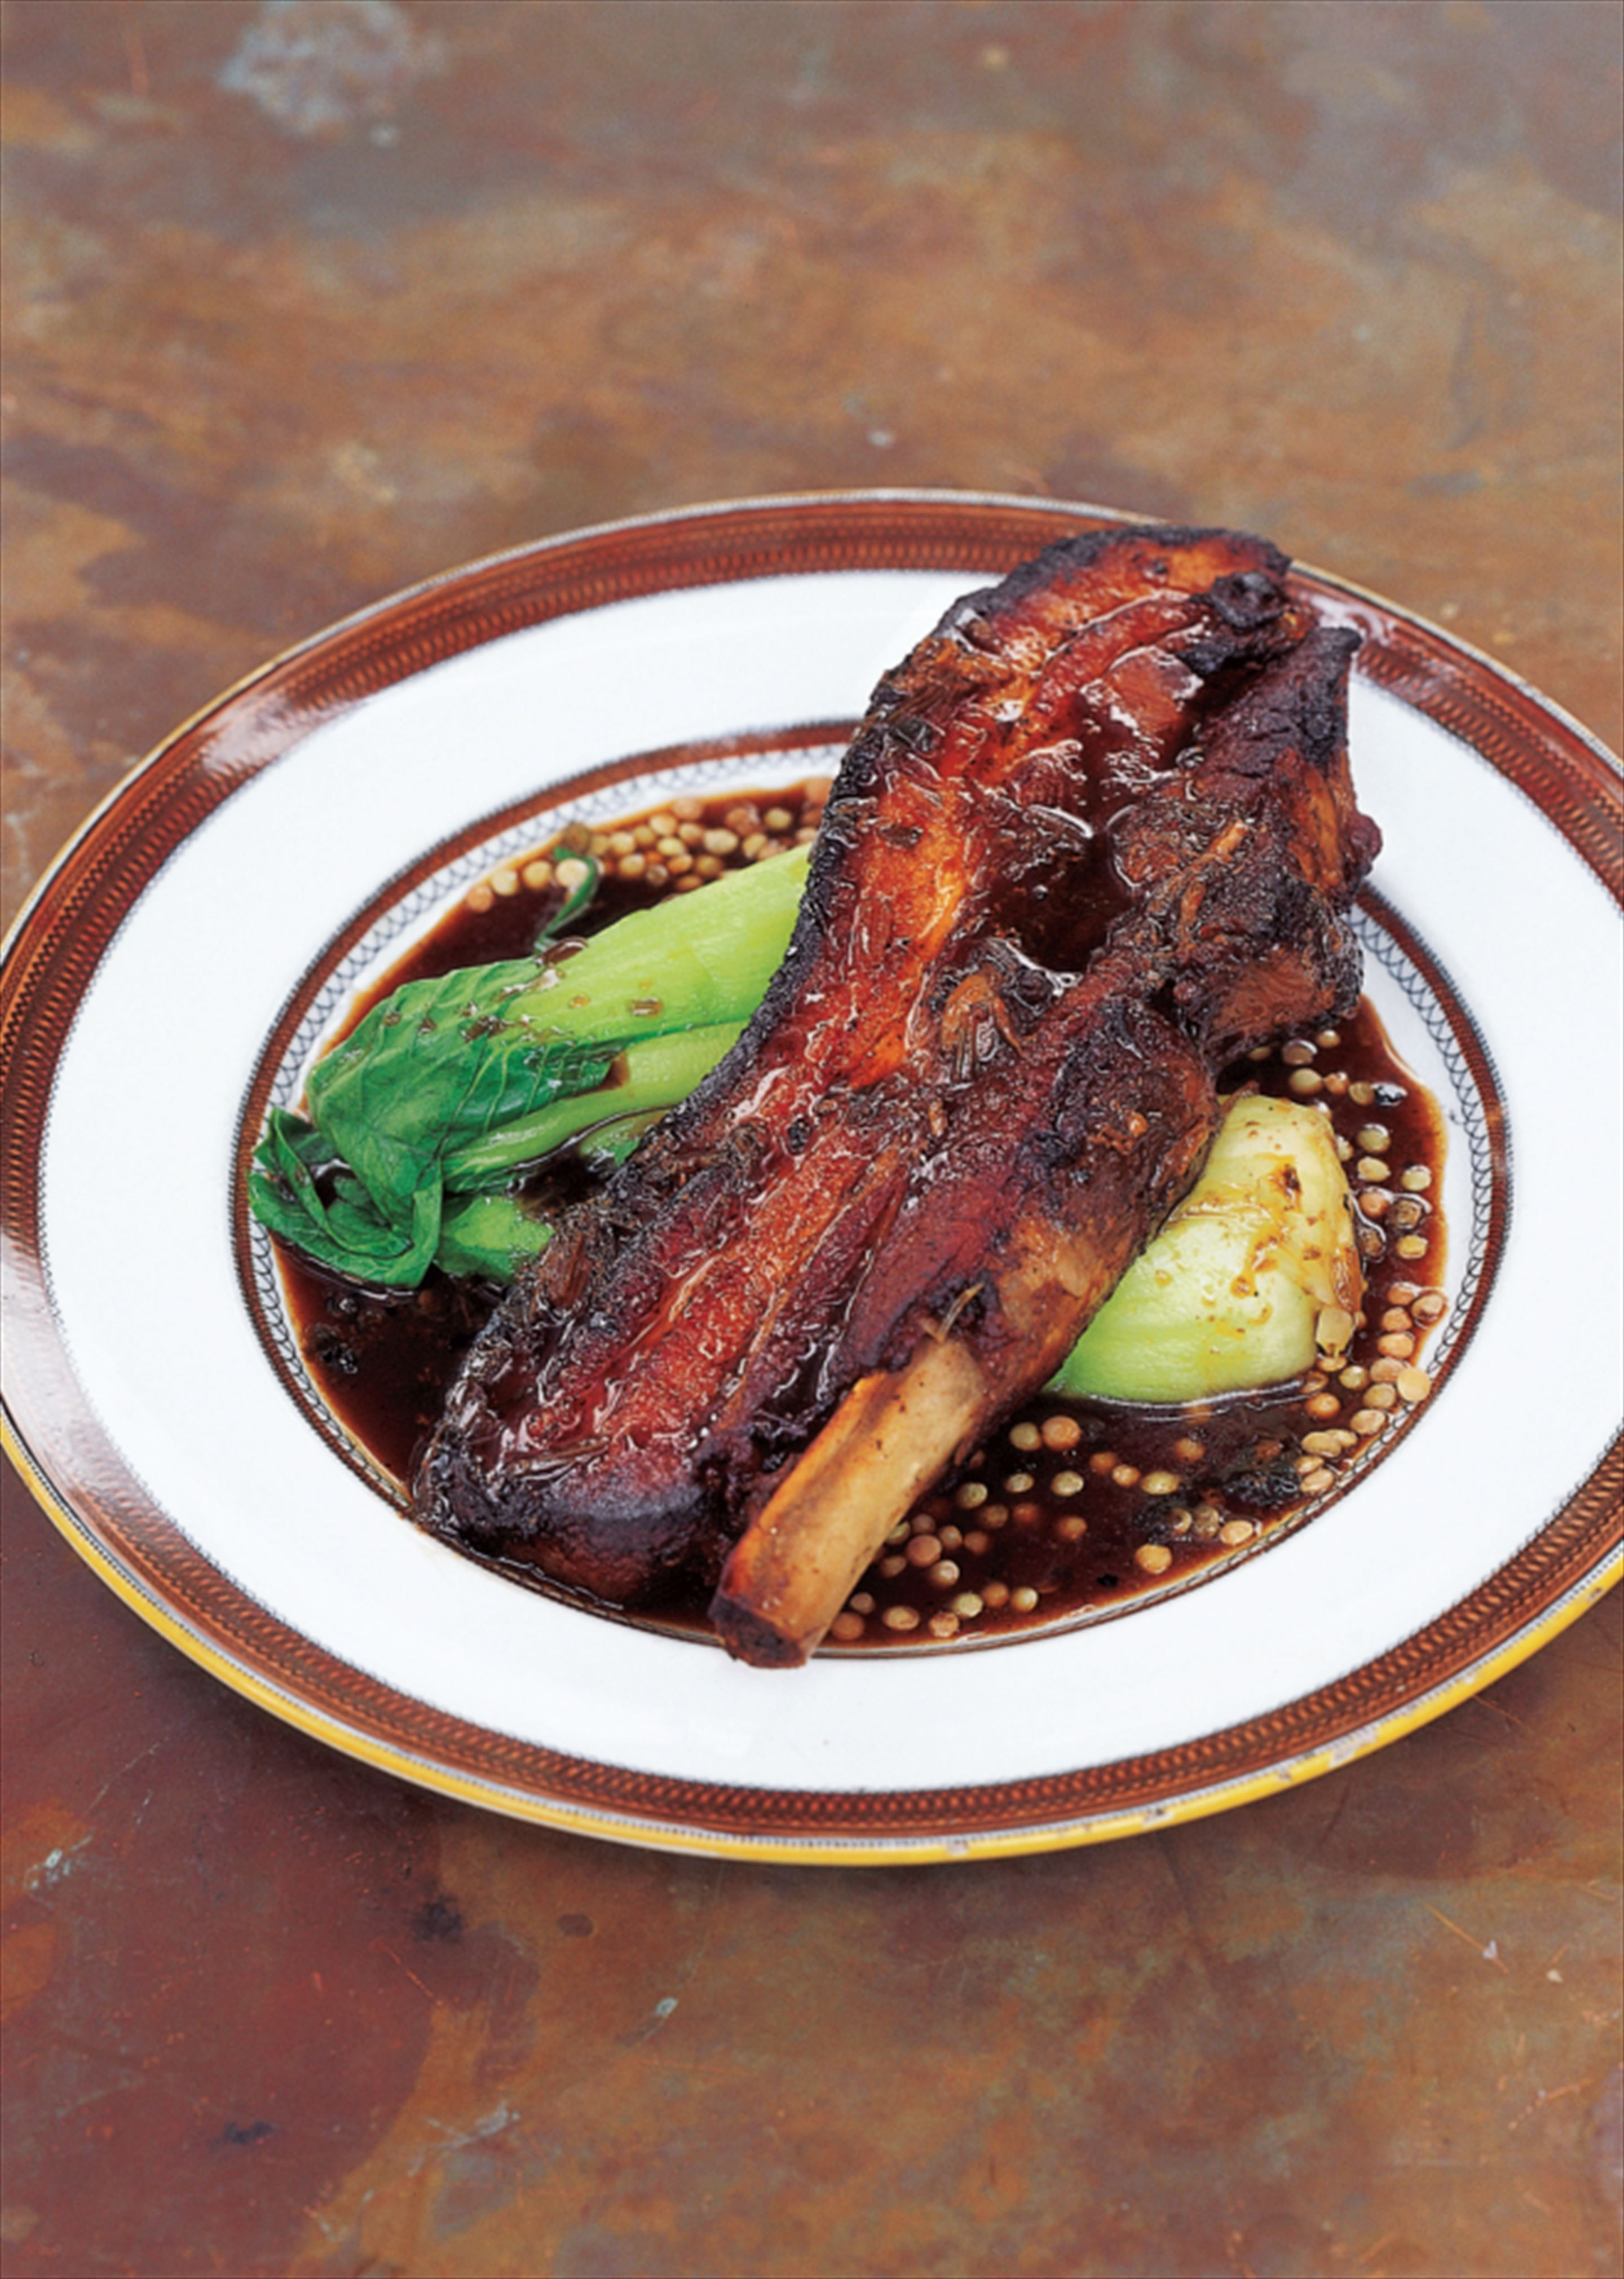 Slow-cooked pork belly with cinnamon, cloves, ginger and star anise